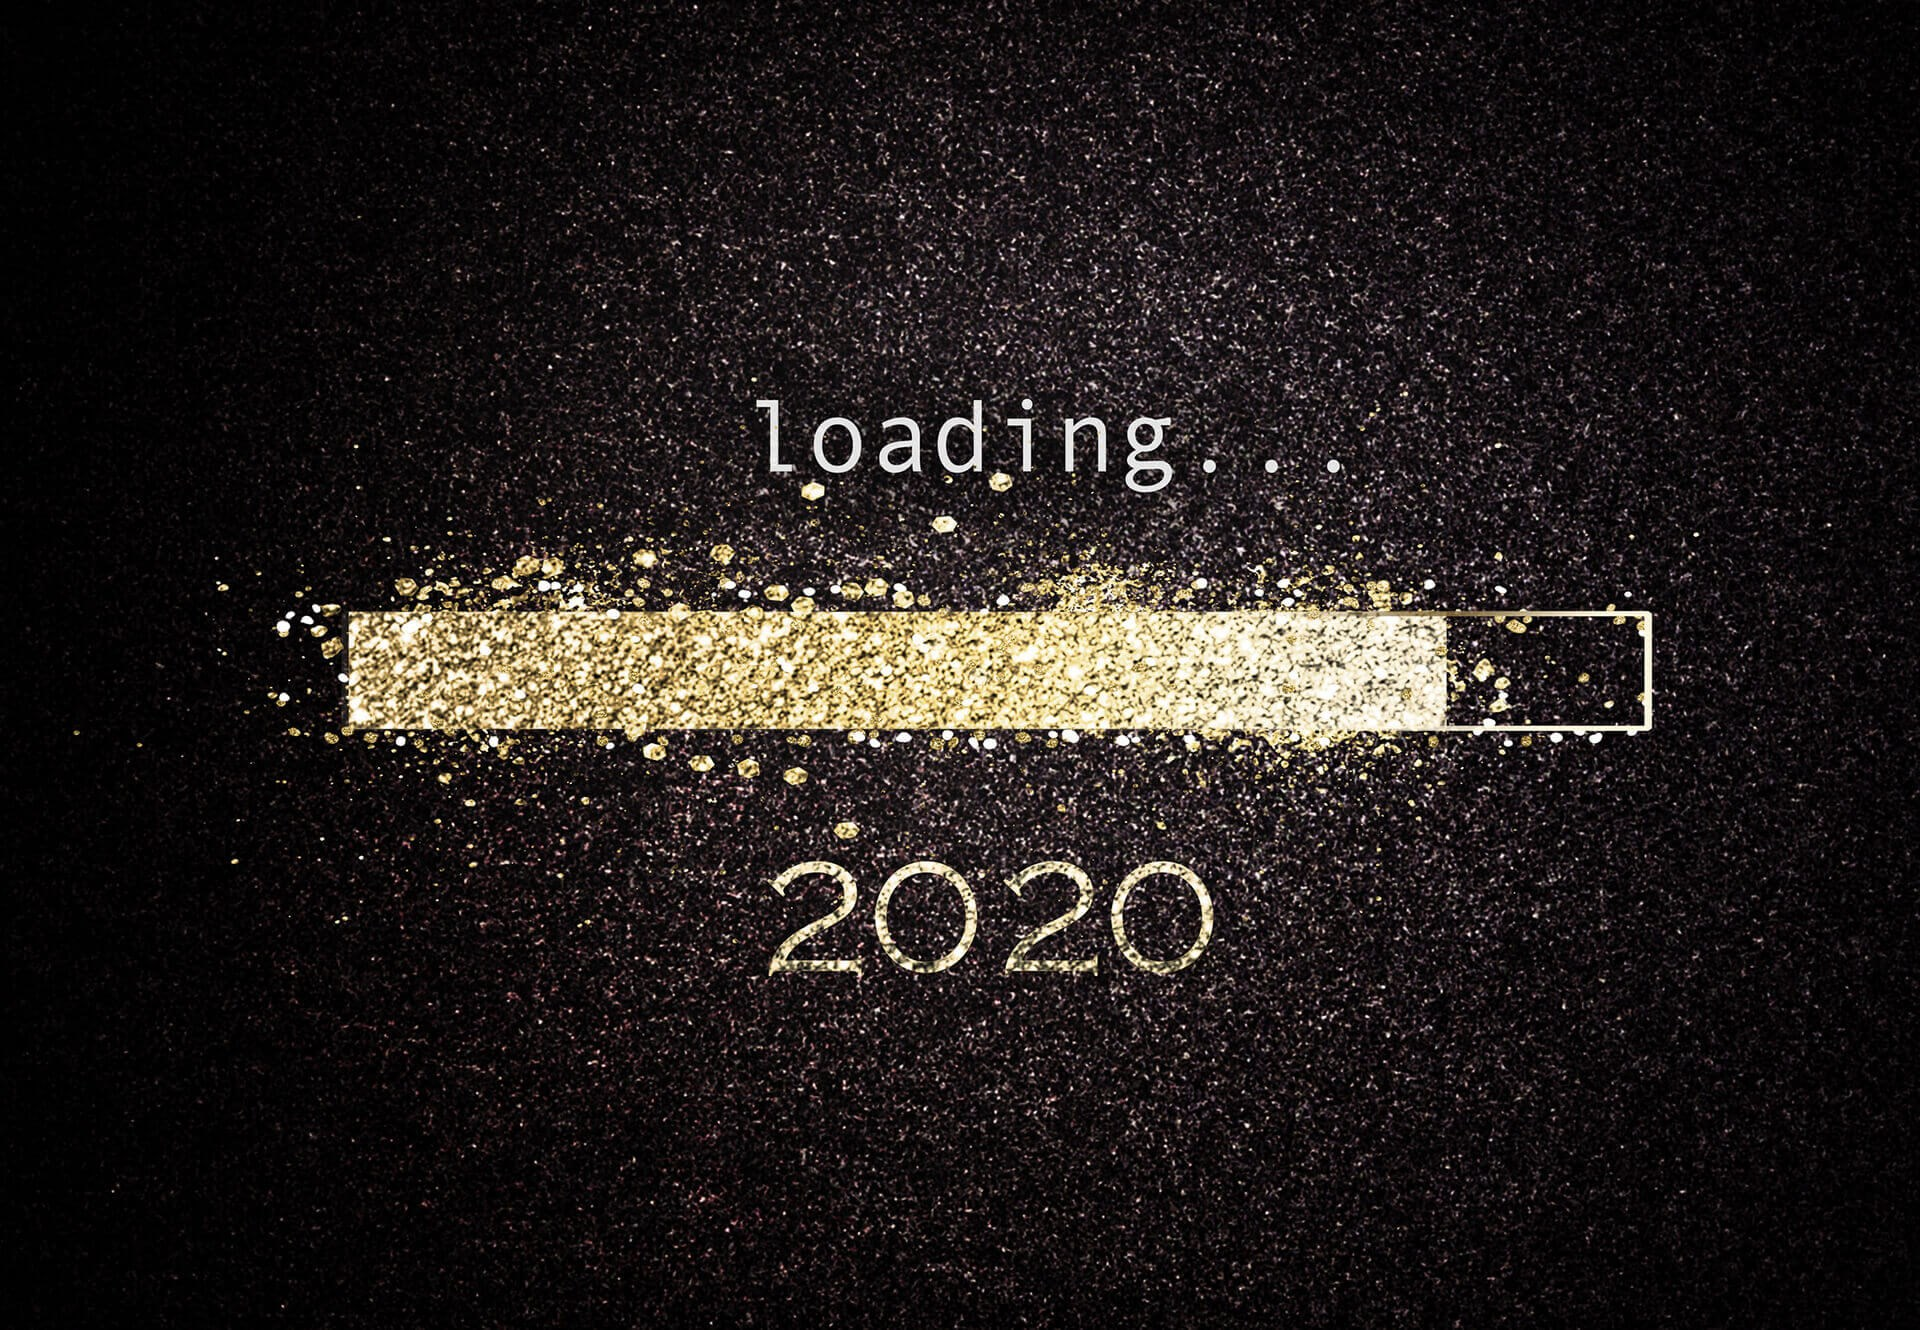 Do you have a 2020 website and marketing plan?